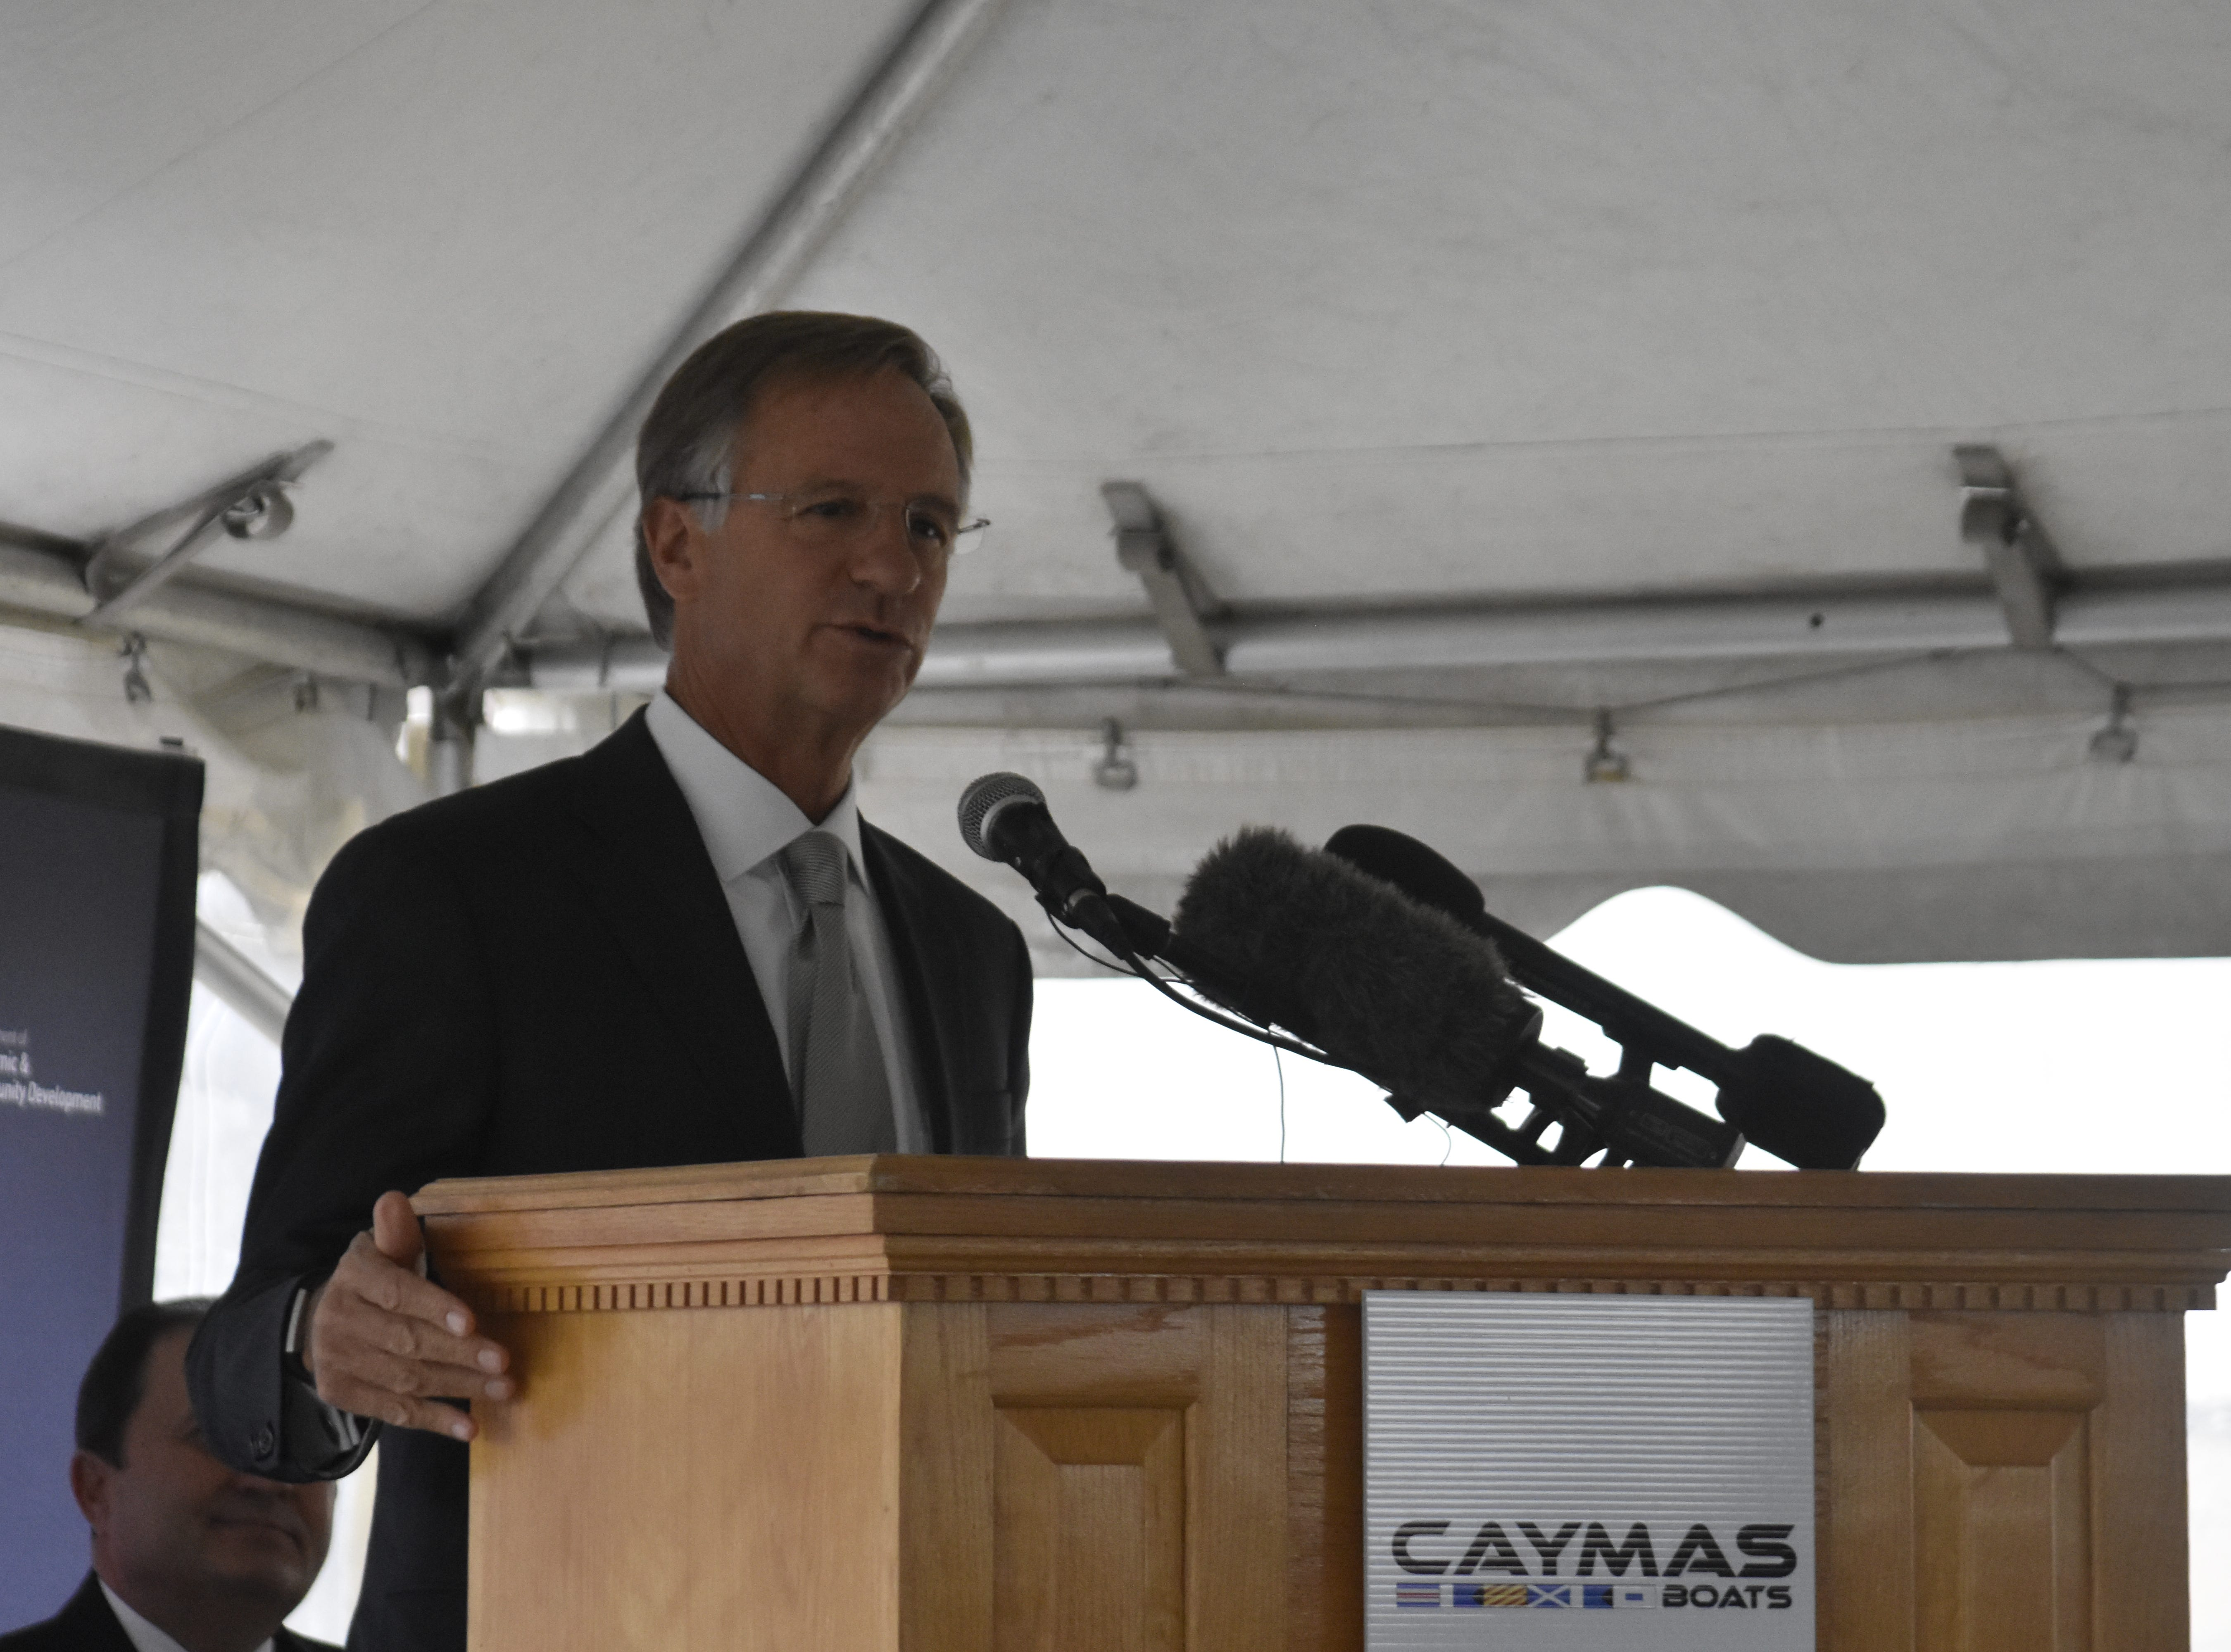 Gov. Bill Haslam speaks at the groundbreaking for Caymas Boats on Monday, Nov. 19 in Ashland City.